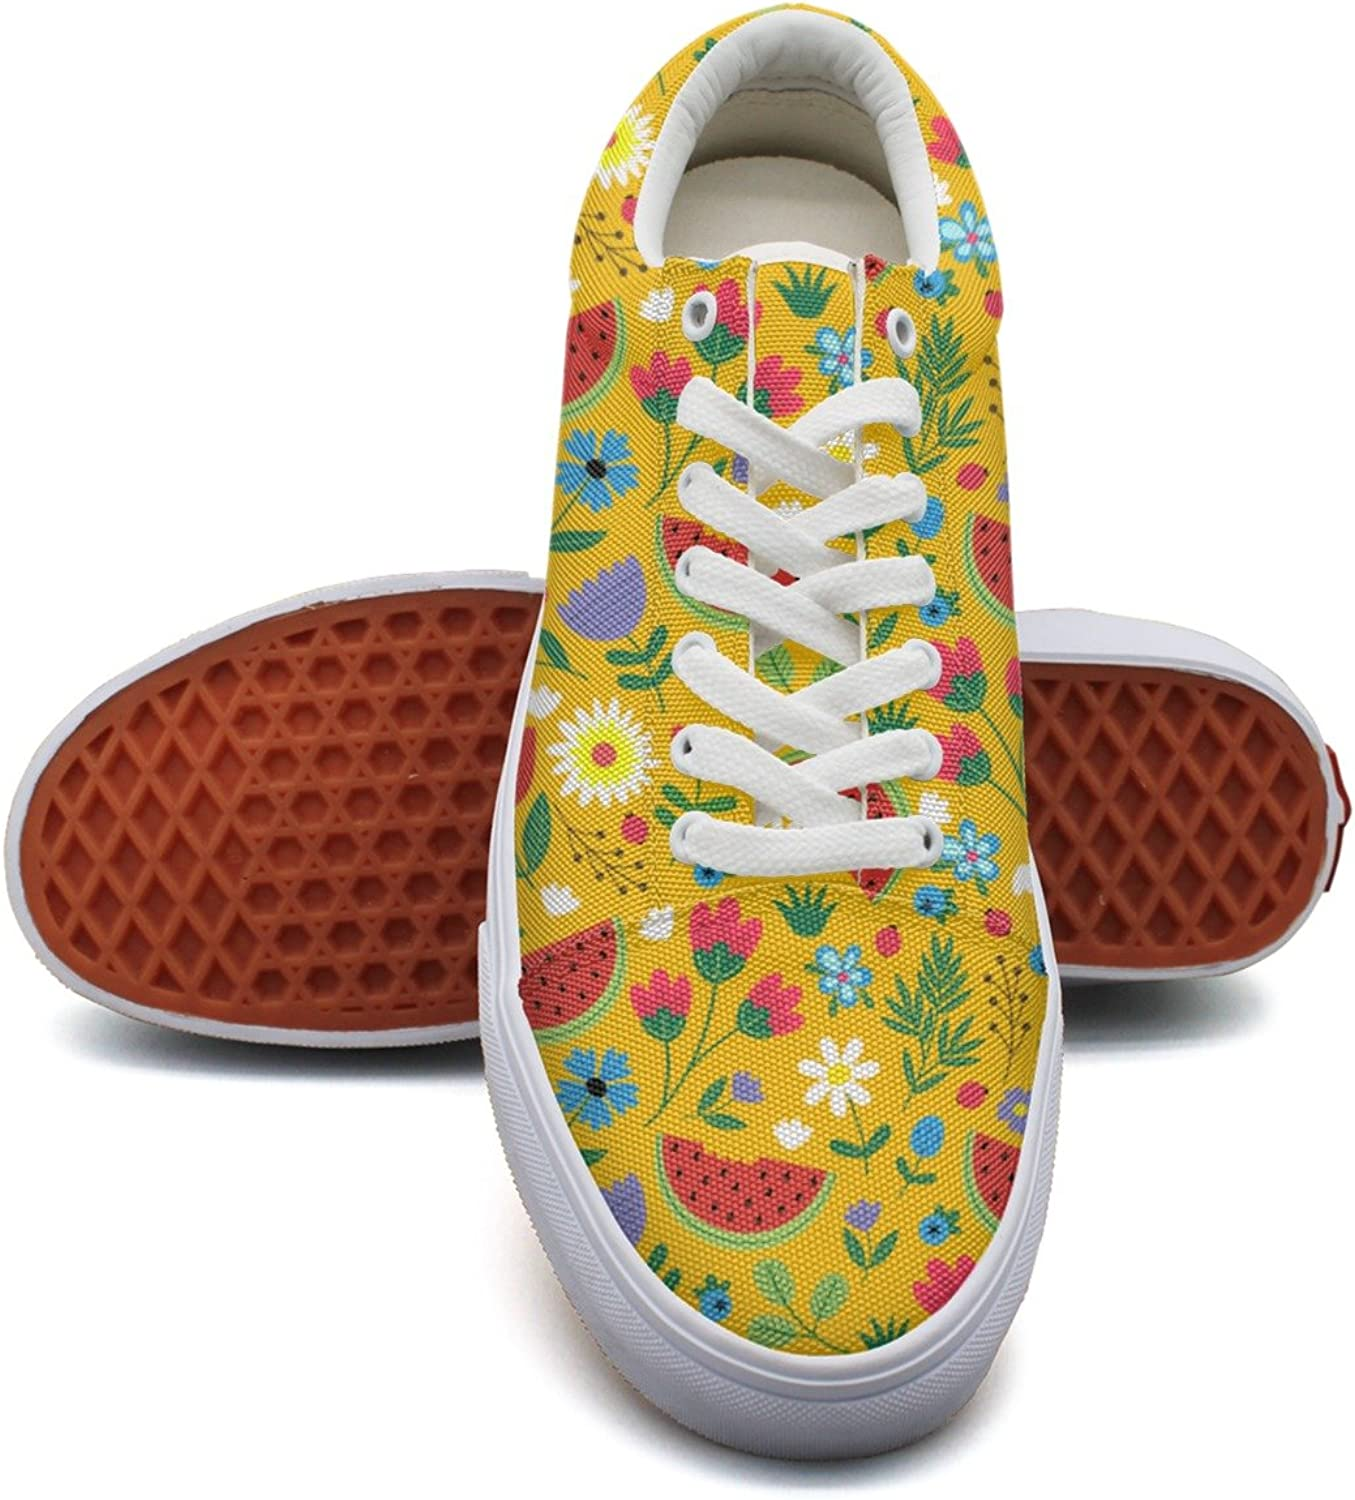 Flowers with Watermelon Leaves Womens Casual Canvas Lace up Dhoes Low Top Retro Volleyball Sneakers for Women's